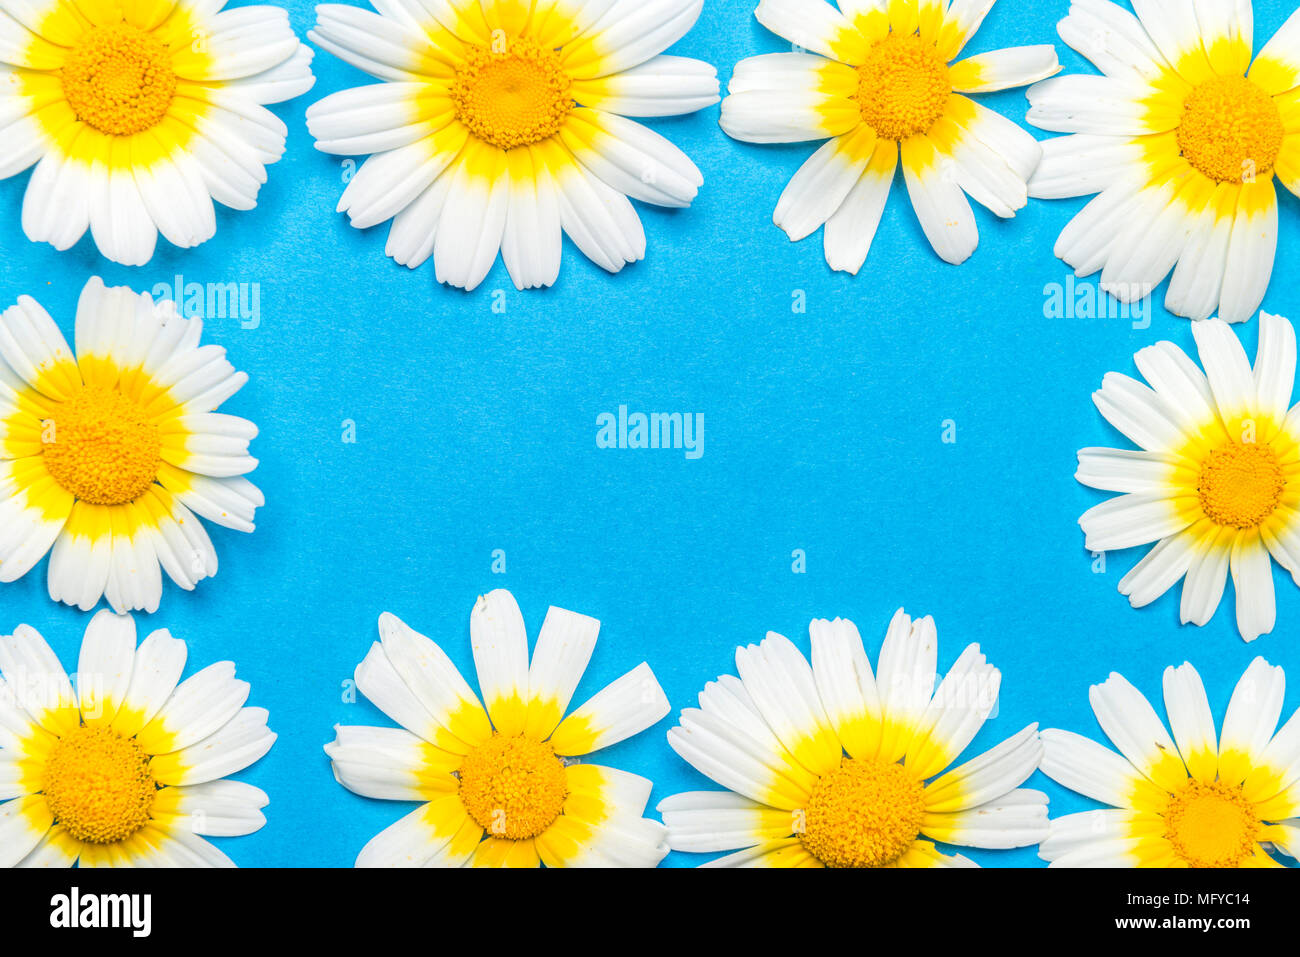 Rectangular Frame Formed By White And Yellow Flowers On A Blue